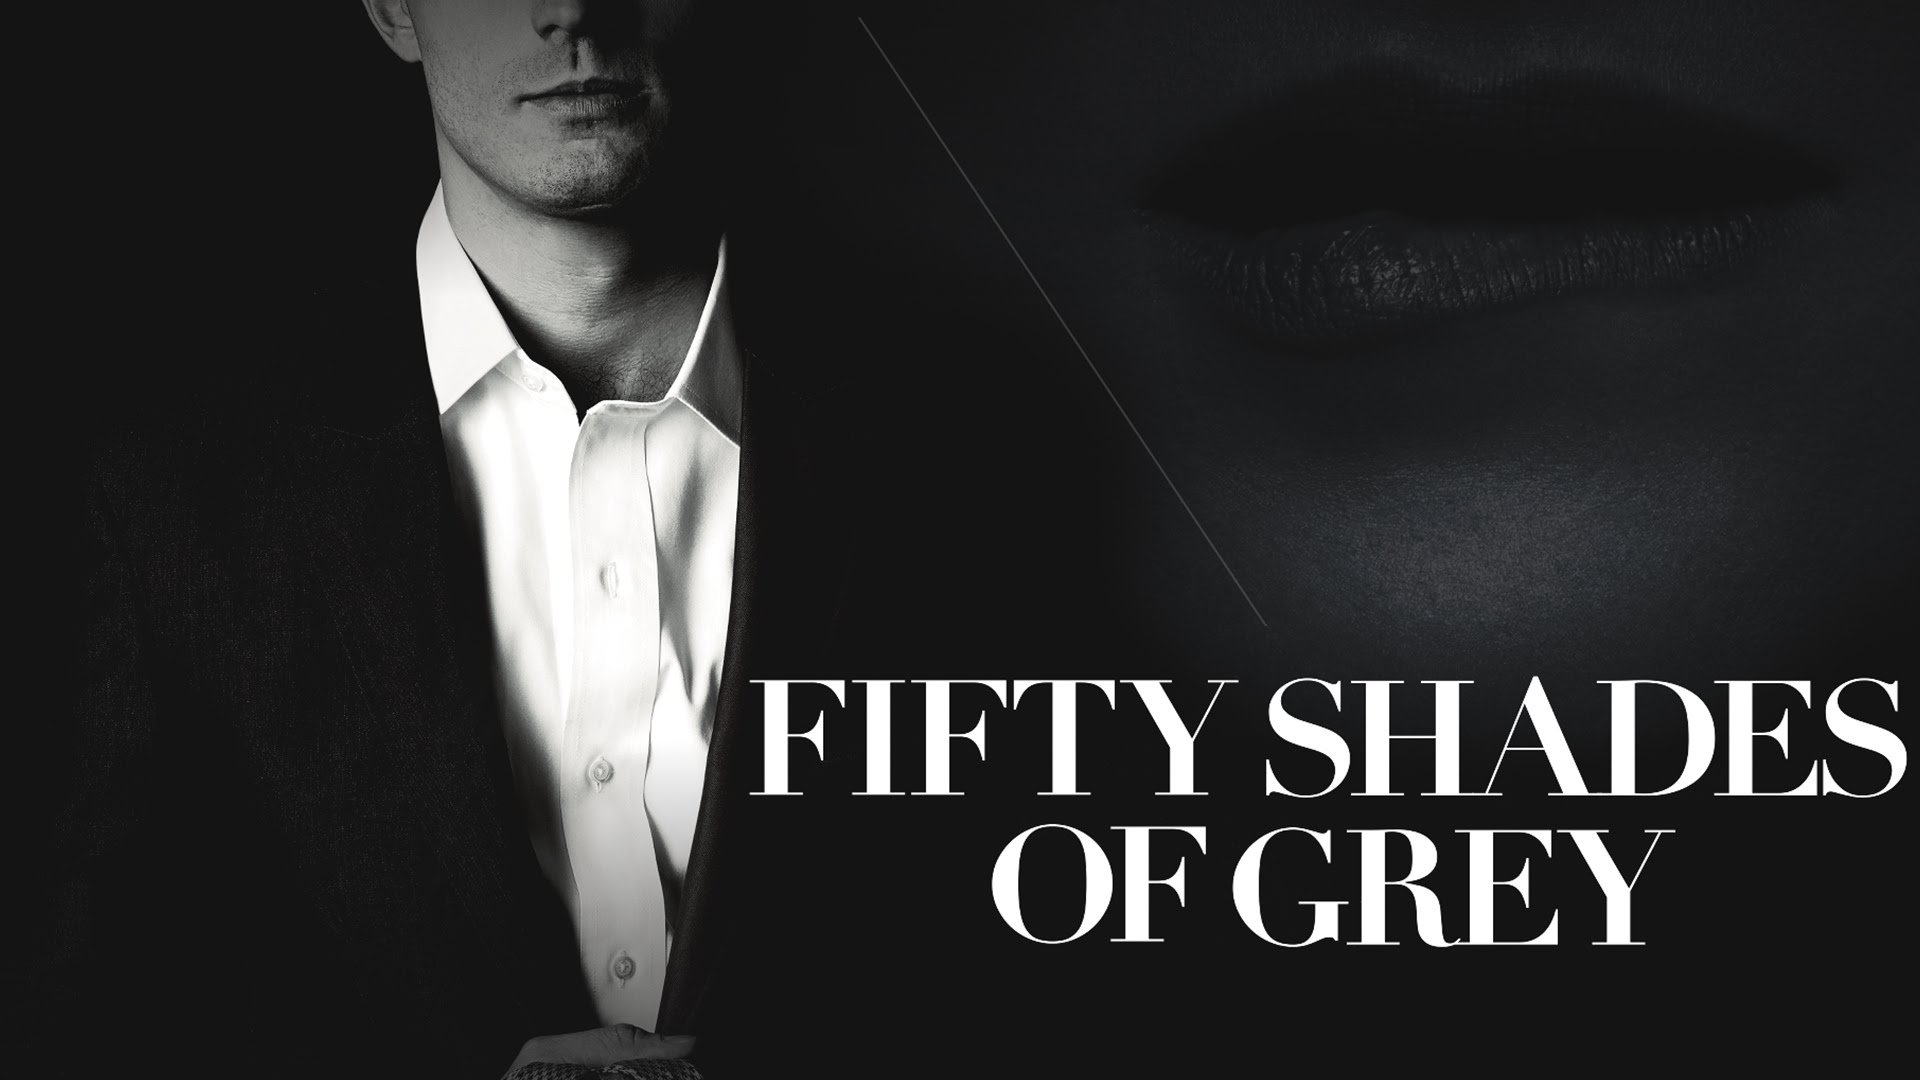 Fifty shades of grey wallpaper 48753 1920x1080 px for Fifthy shade of grey